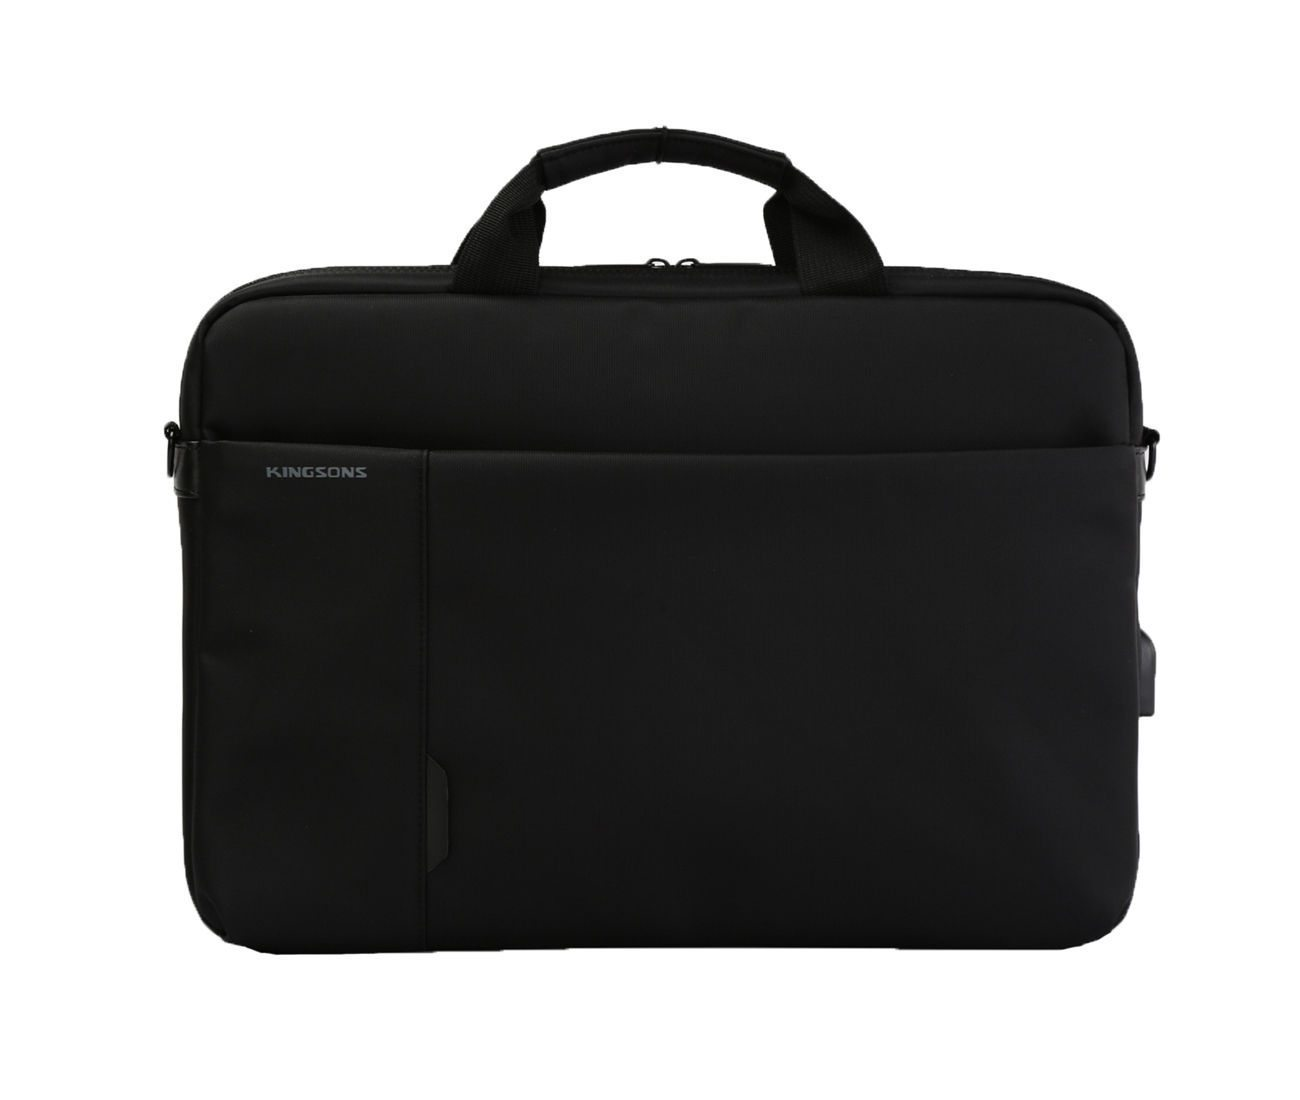 "Kingsons Laptop Bag 15.6"" K9008W"